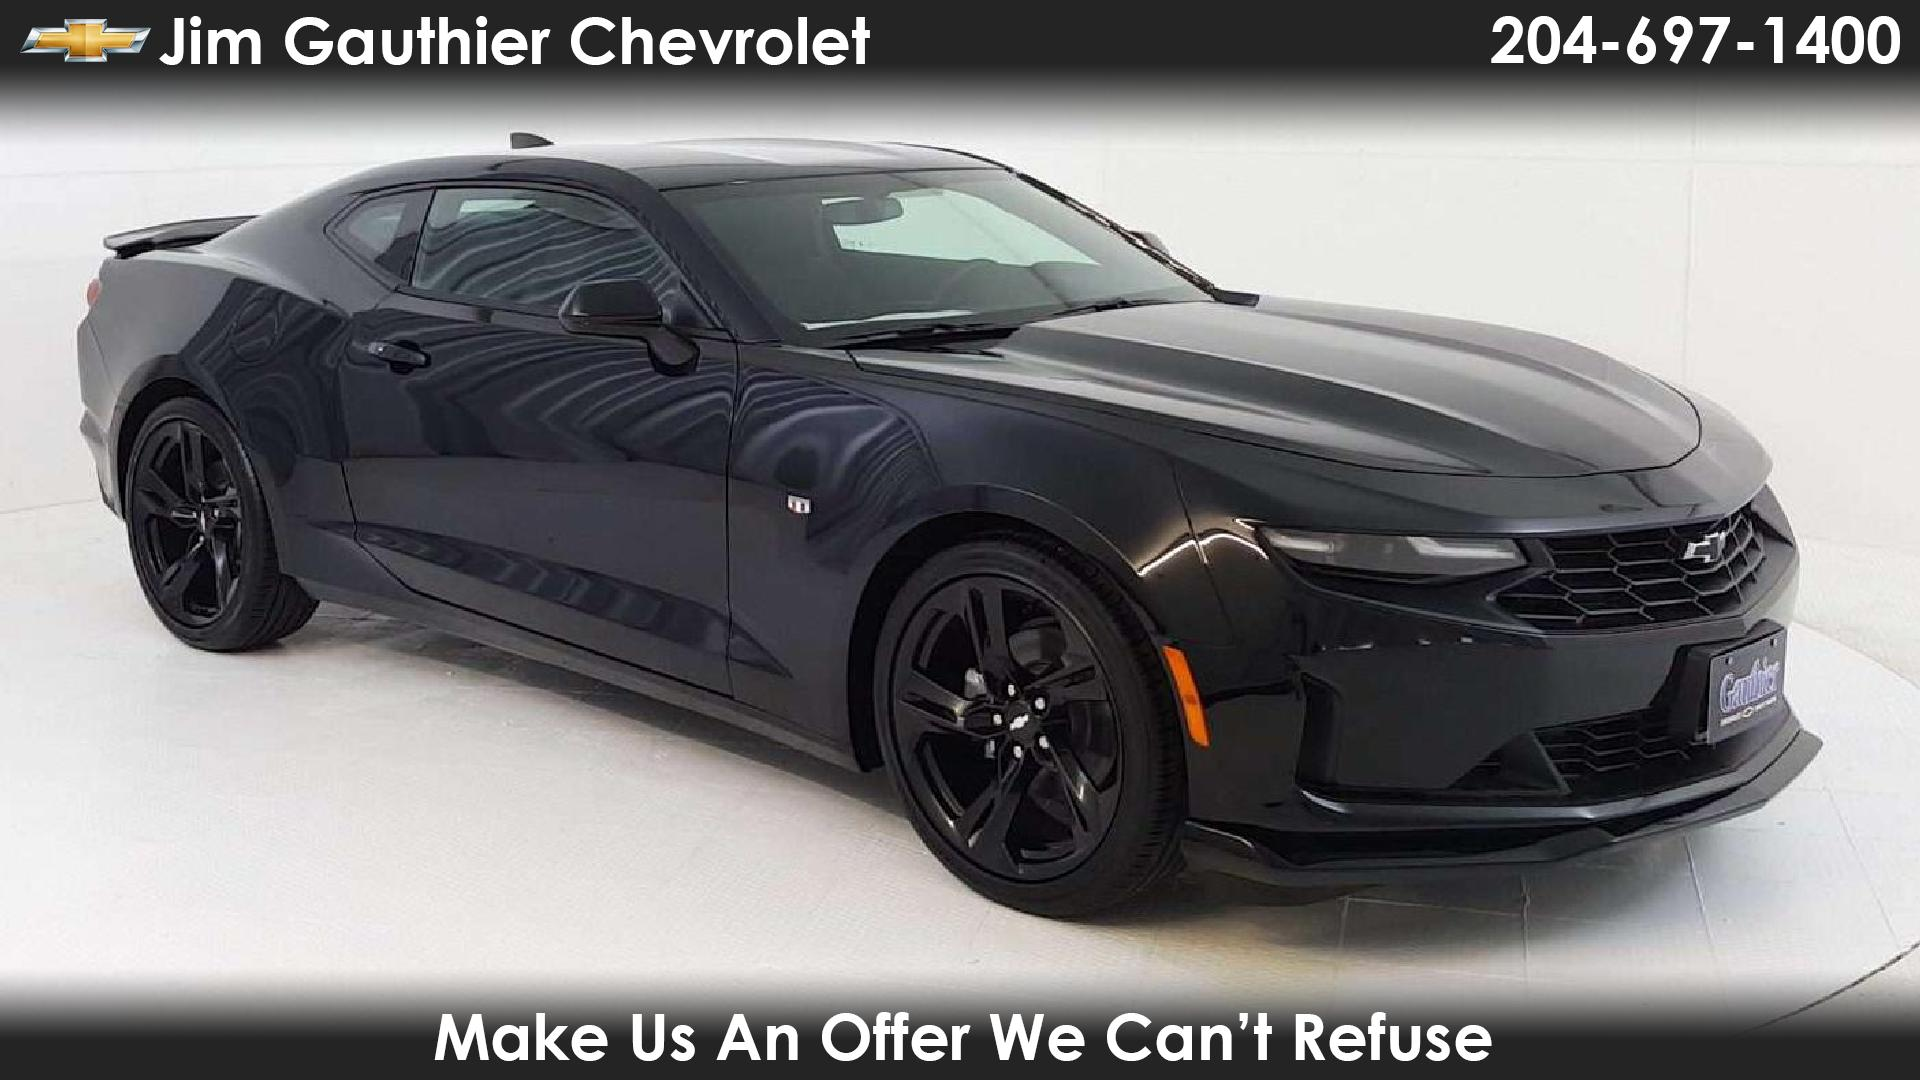 Used Cars For Sale In Winnipeg >> Jim Gauthier Chevrolet In Winnipeg New Chevrolet Camaro